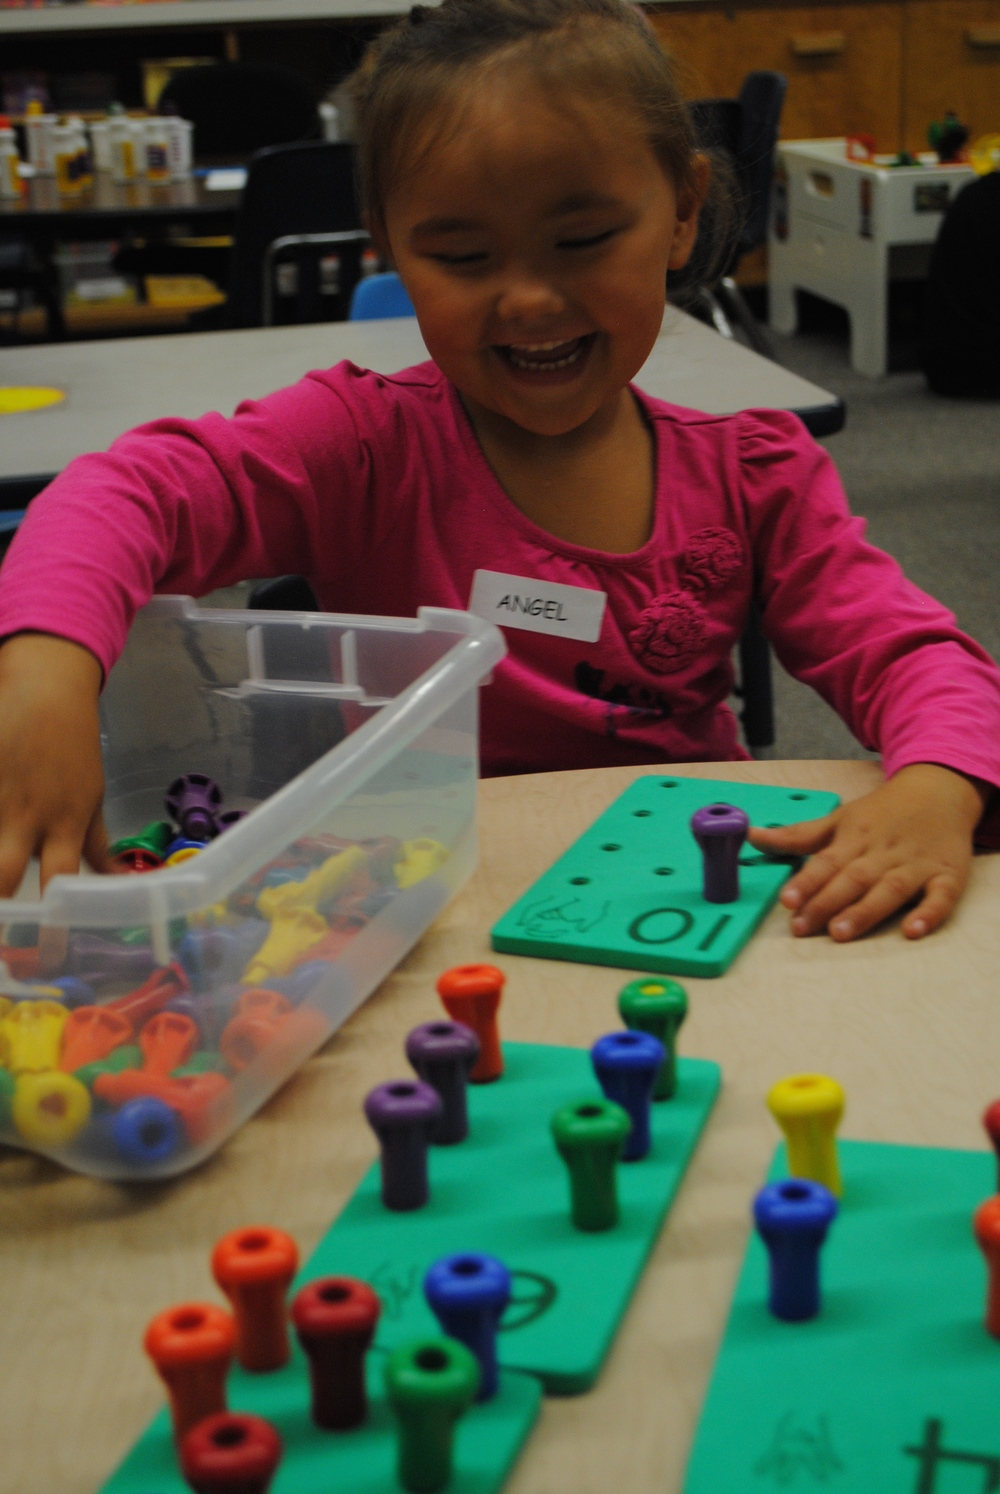 Angel Erickson, 4, has fun putting colorful pegs in number boards in Alicia Johnson's preschool class today. (Photos by Dana Pavek, WDC Schools)